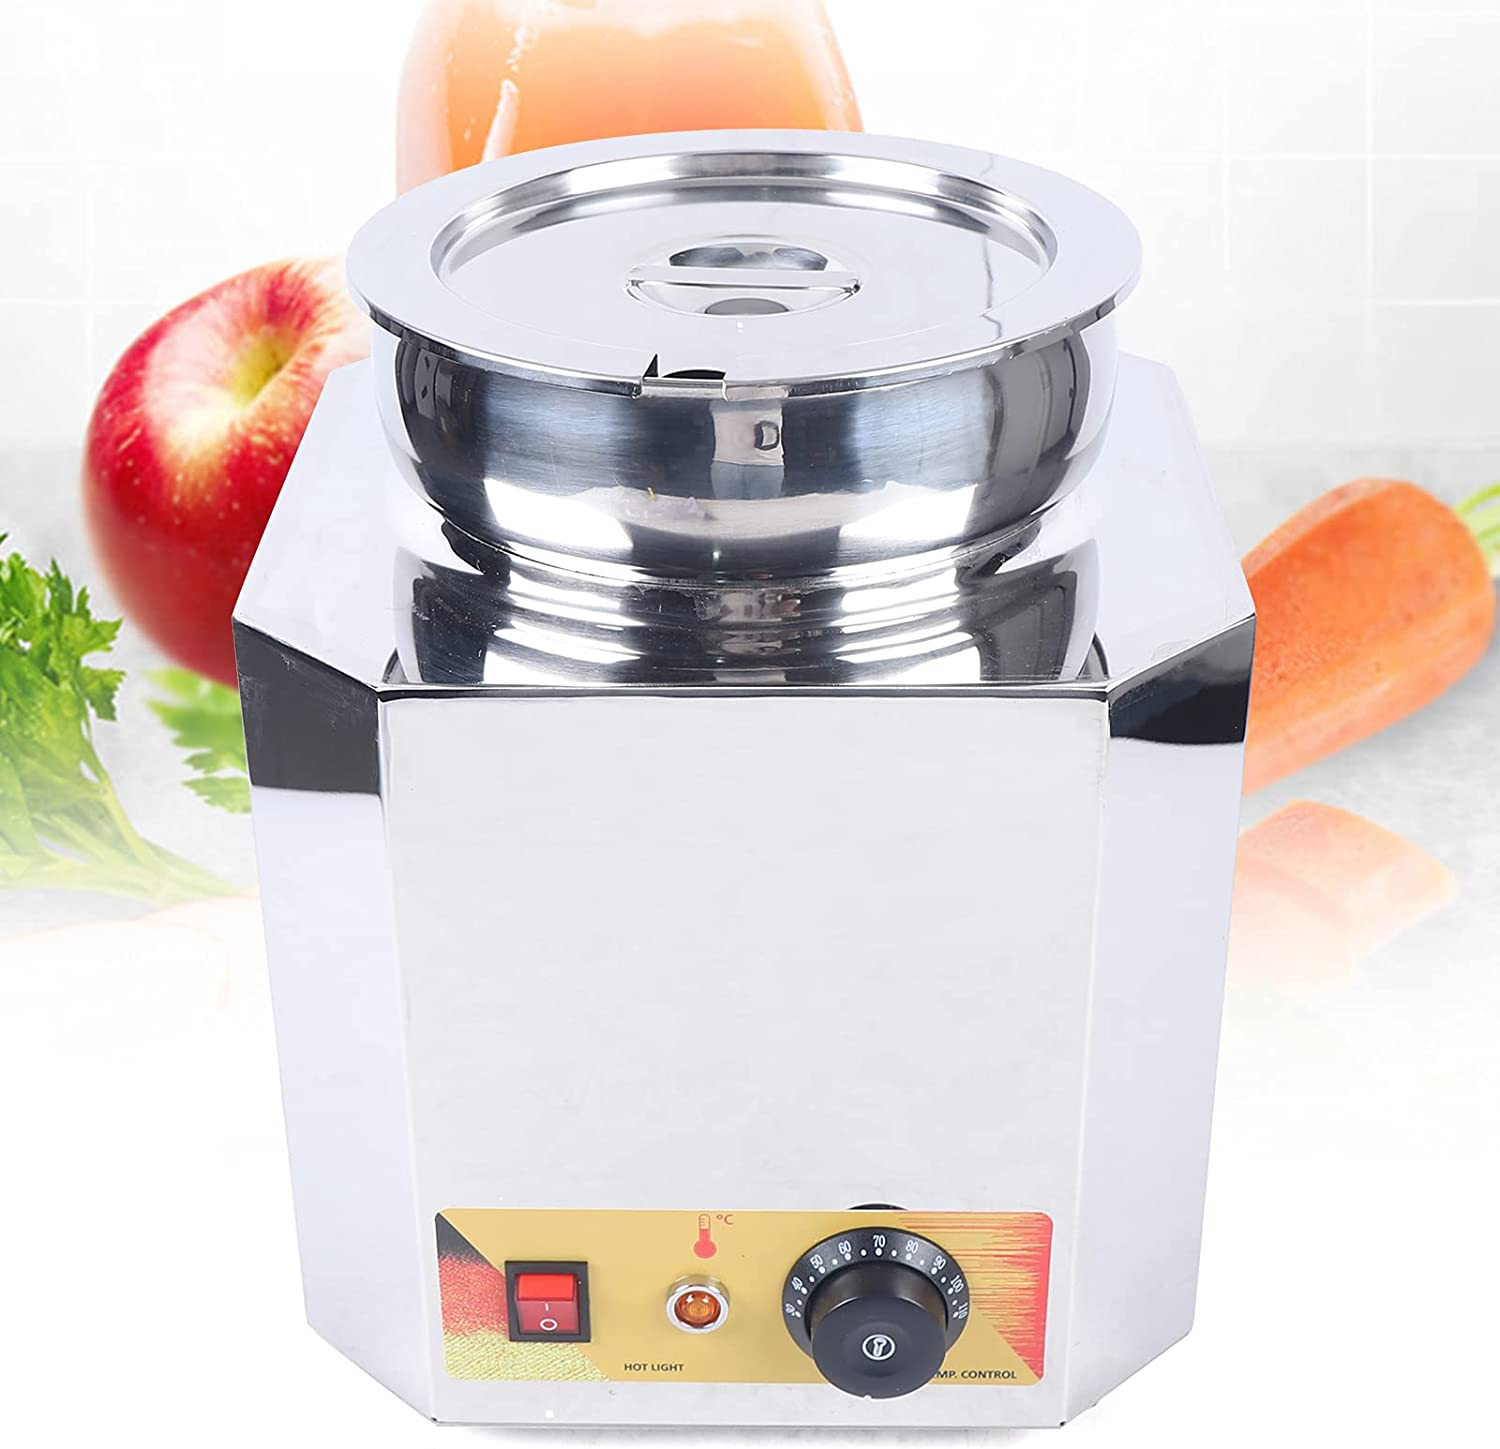 110v Free Shipping Cheap Bargain Gift NEW before selling ☆ Multi-function Constant Temperature Countertop Heater Sauce